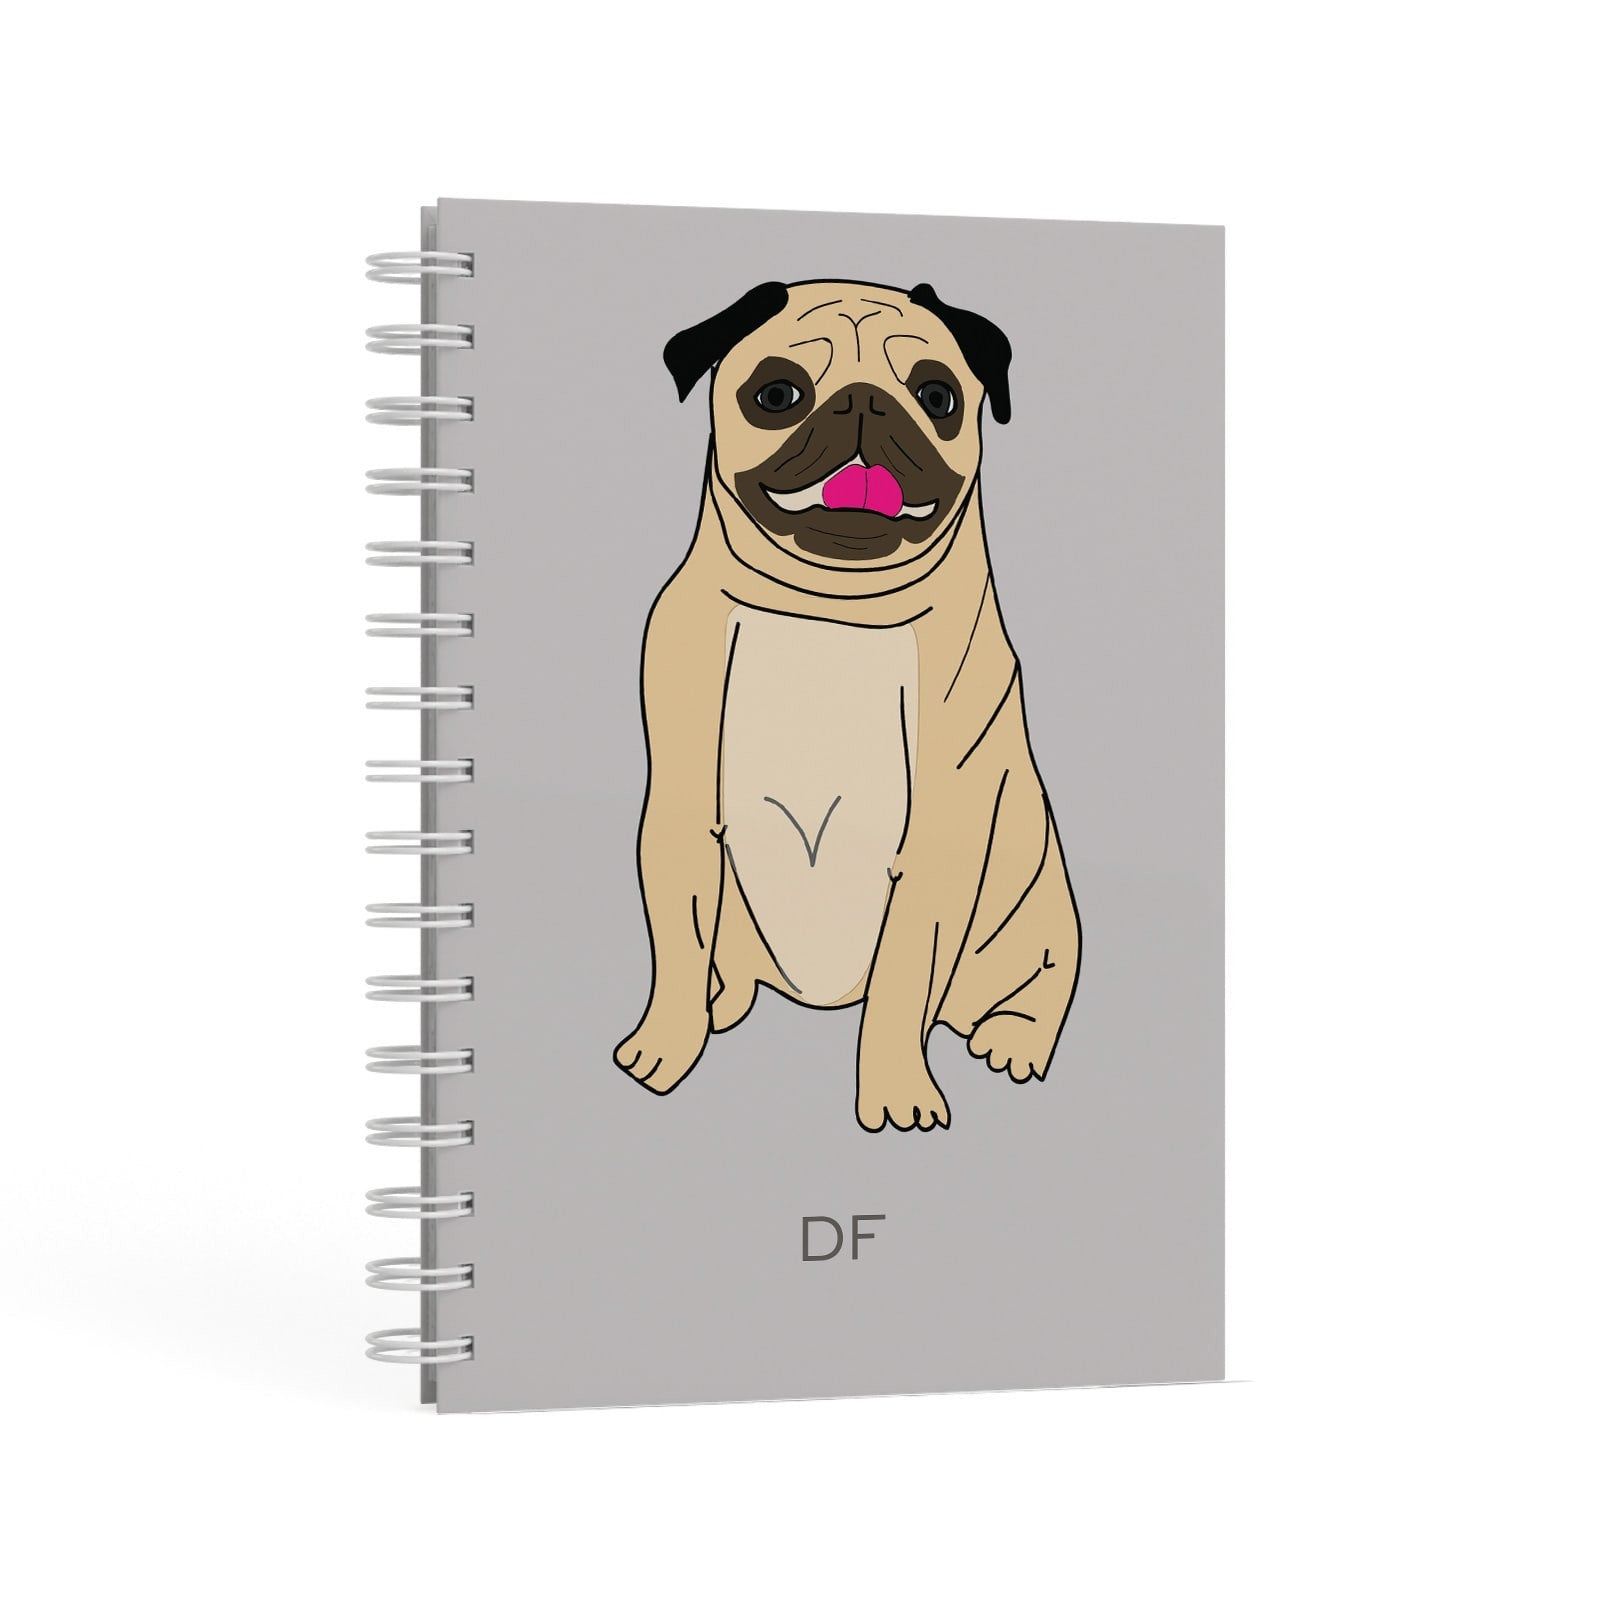 Personalised Initials Pug A5 Hardcover Notebook Second Side View